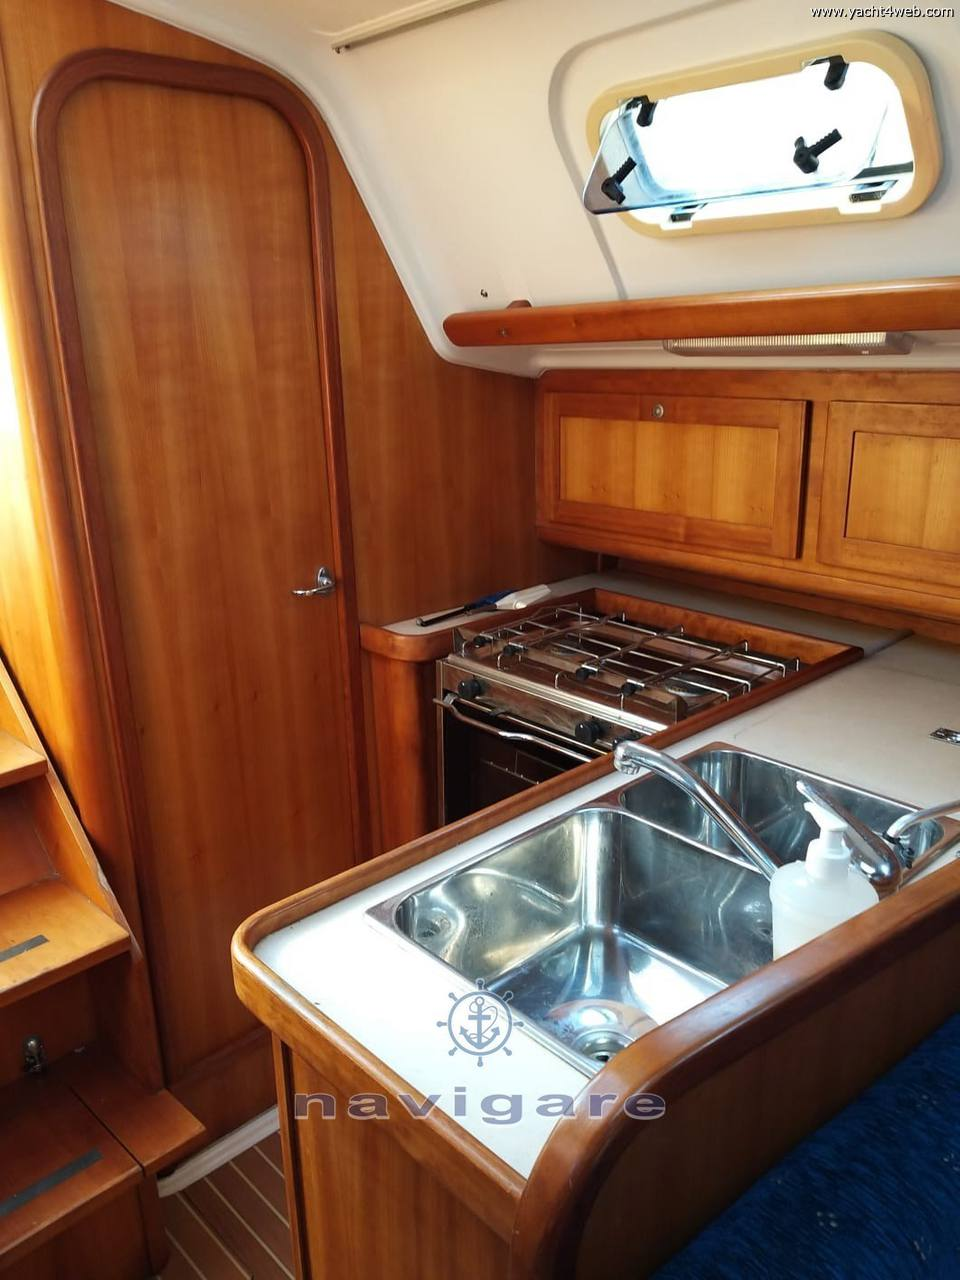 Comar Comet 33 s Sailing boat used for sale